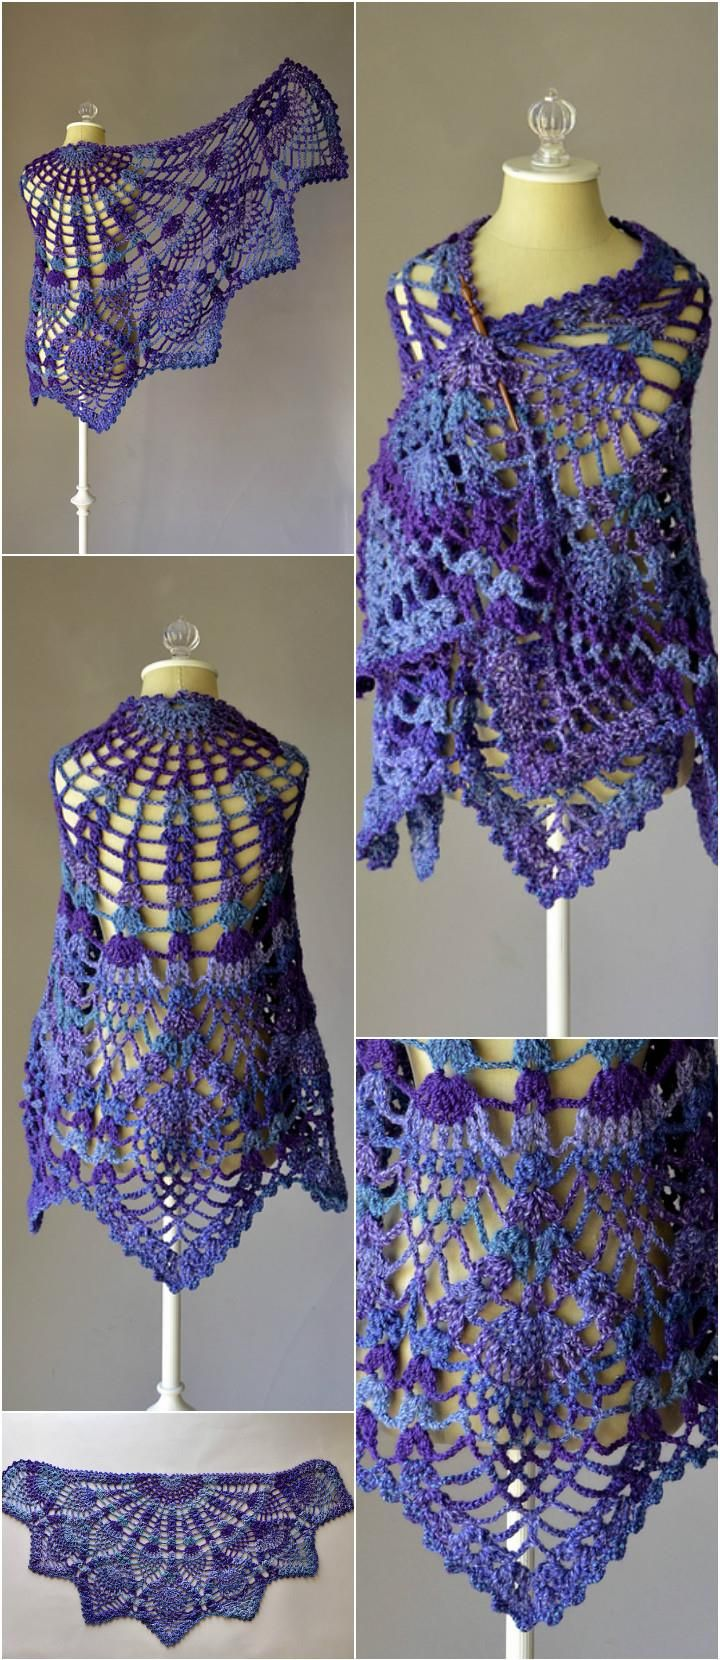 10 free crochet shawl patterns for womens free crochet shawl 10 free crochet shawl patterns for womens bankloansurffo Images